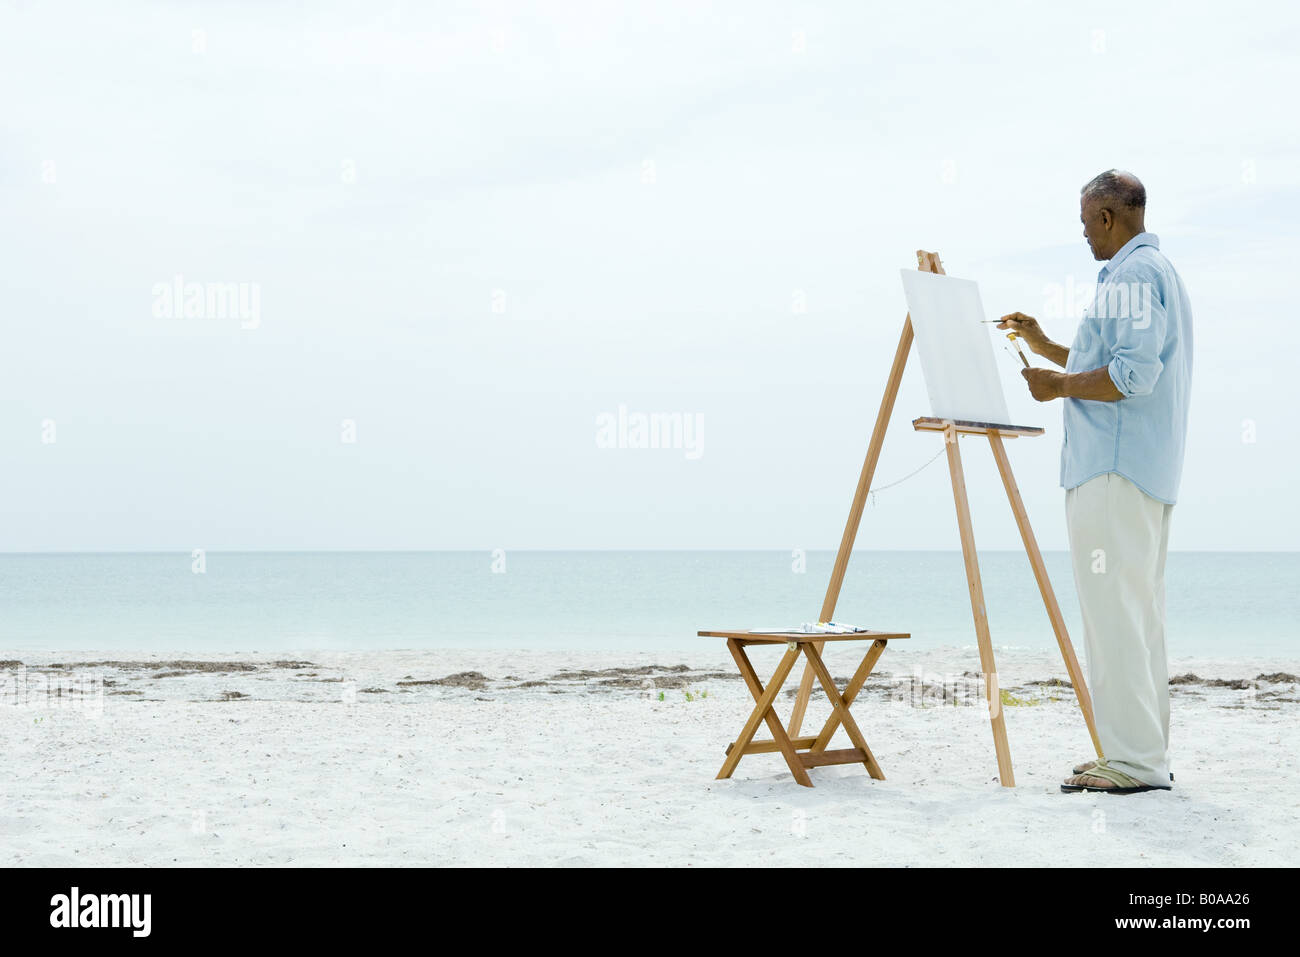 Senior man painting on canvas at the beach, side view - Stock Image